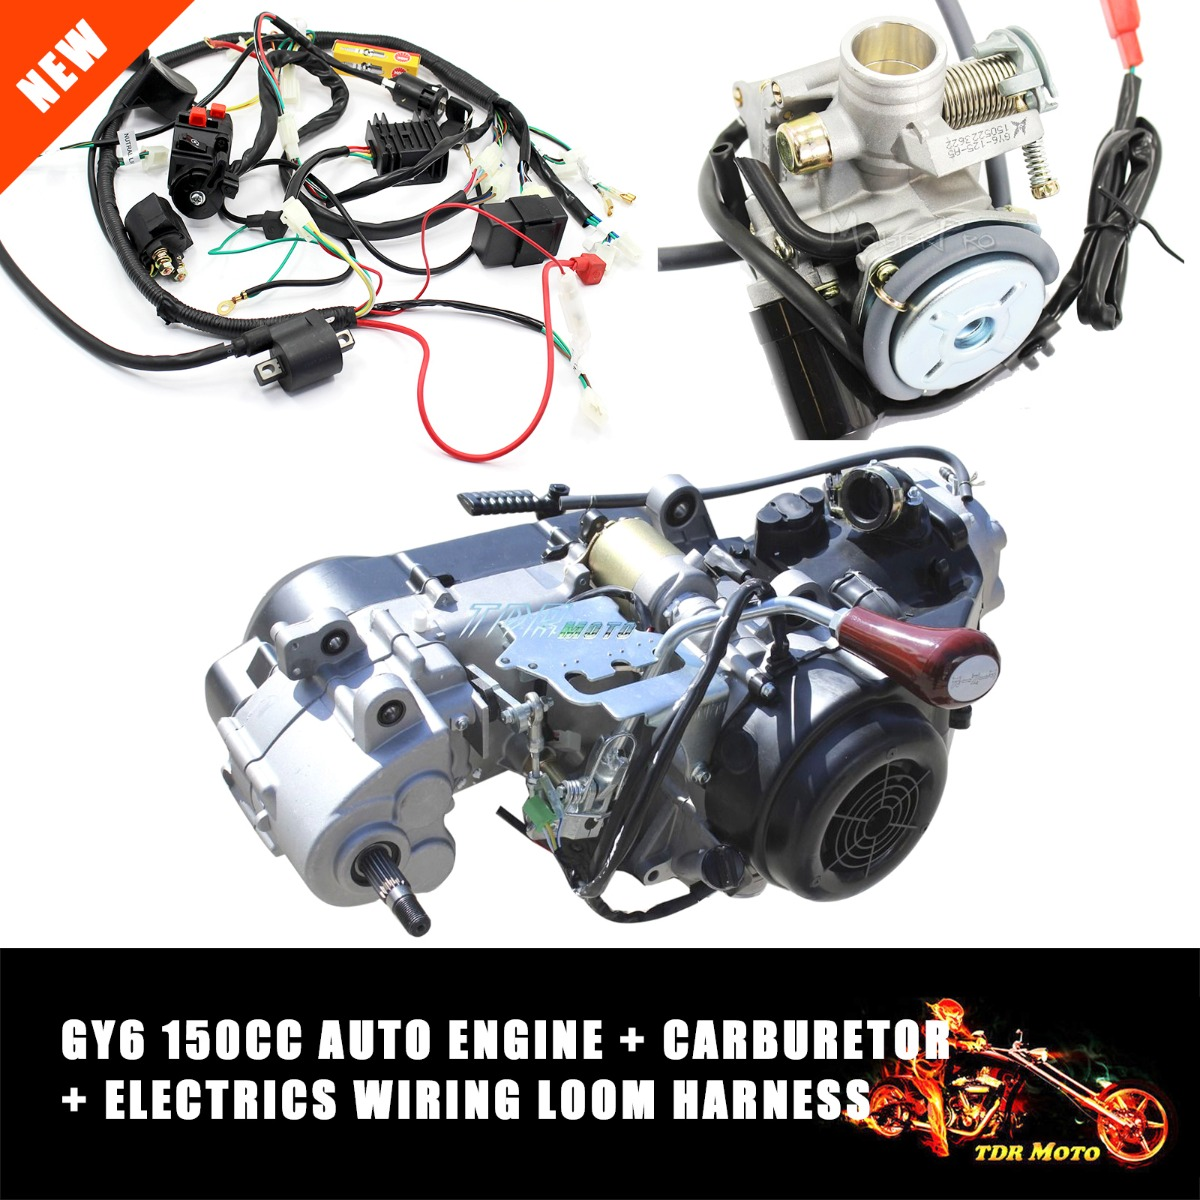 gy6 150cc fully auto reverse gear engine wiring loom harness gy6 150cc fully auto reverse gear engine wiring loom harness carburetor